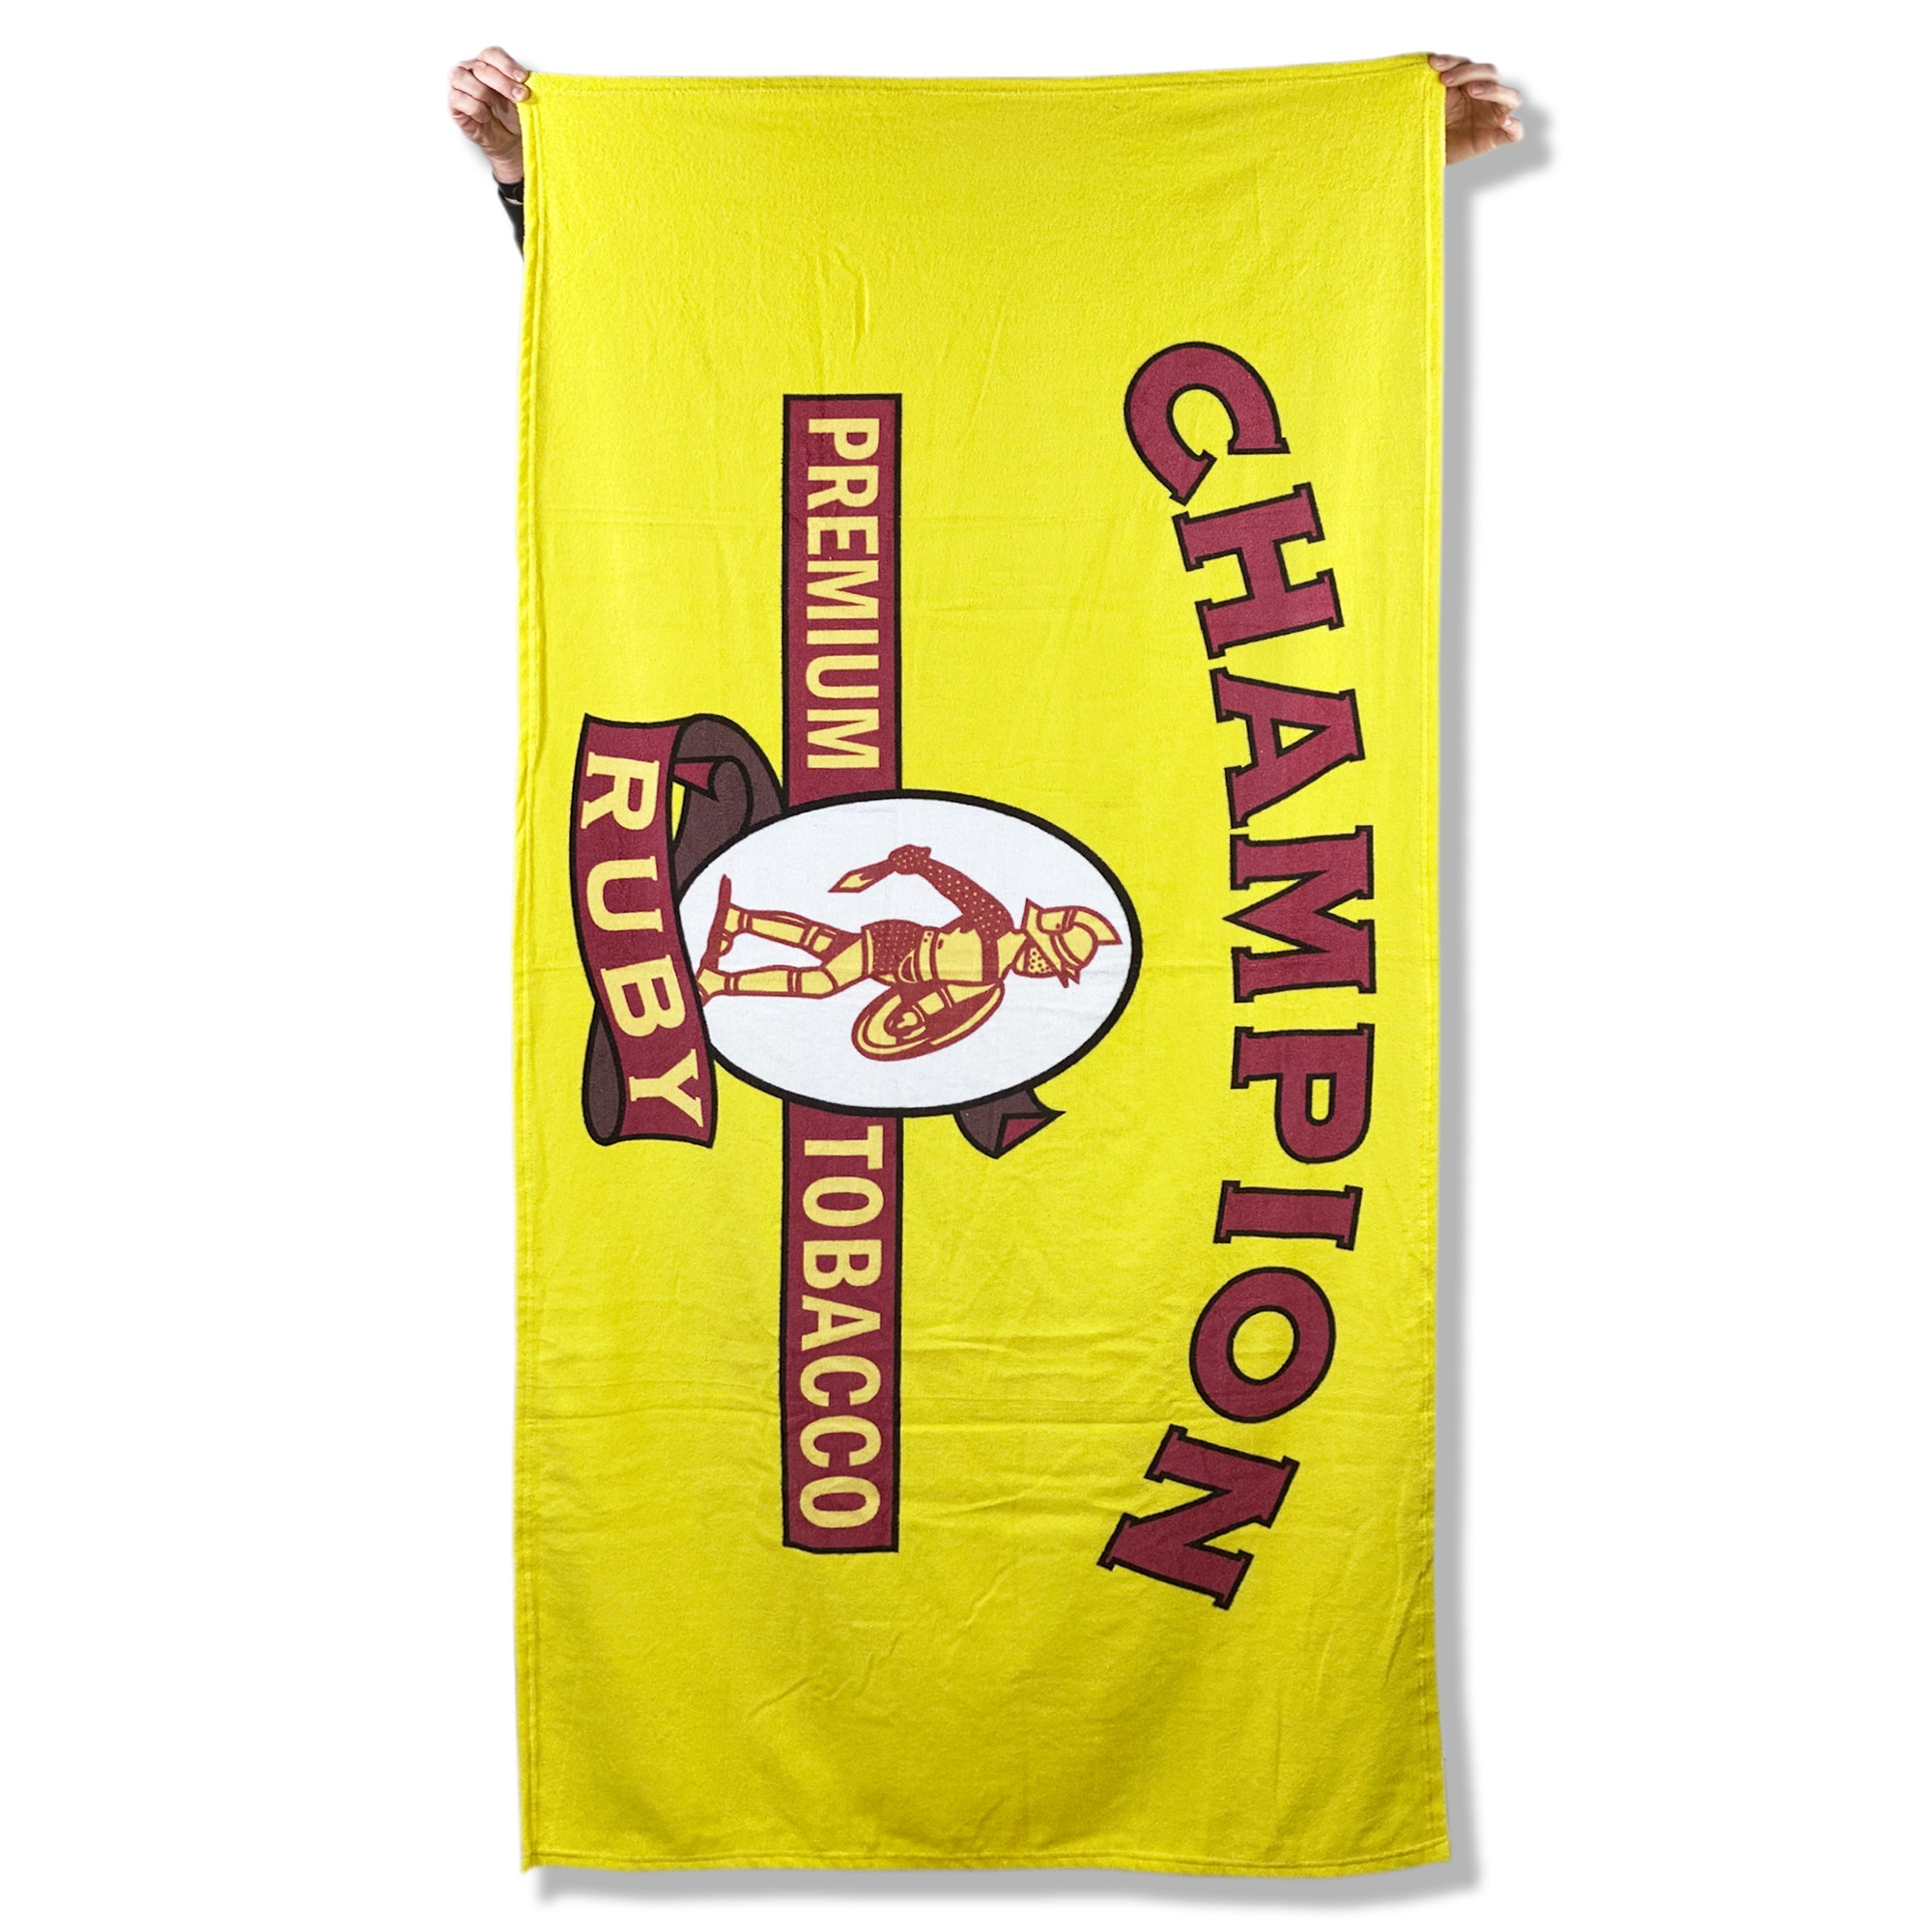 CHAMPION YELLOW BEACH TOWEL